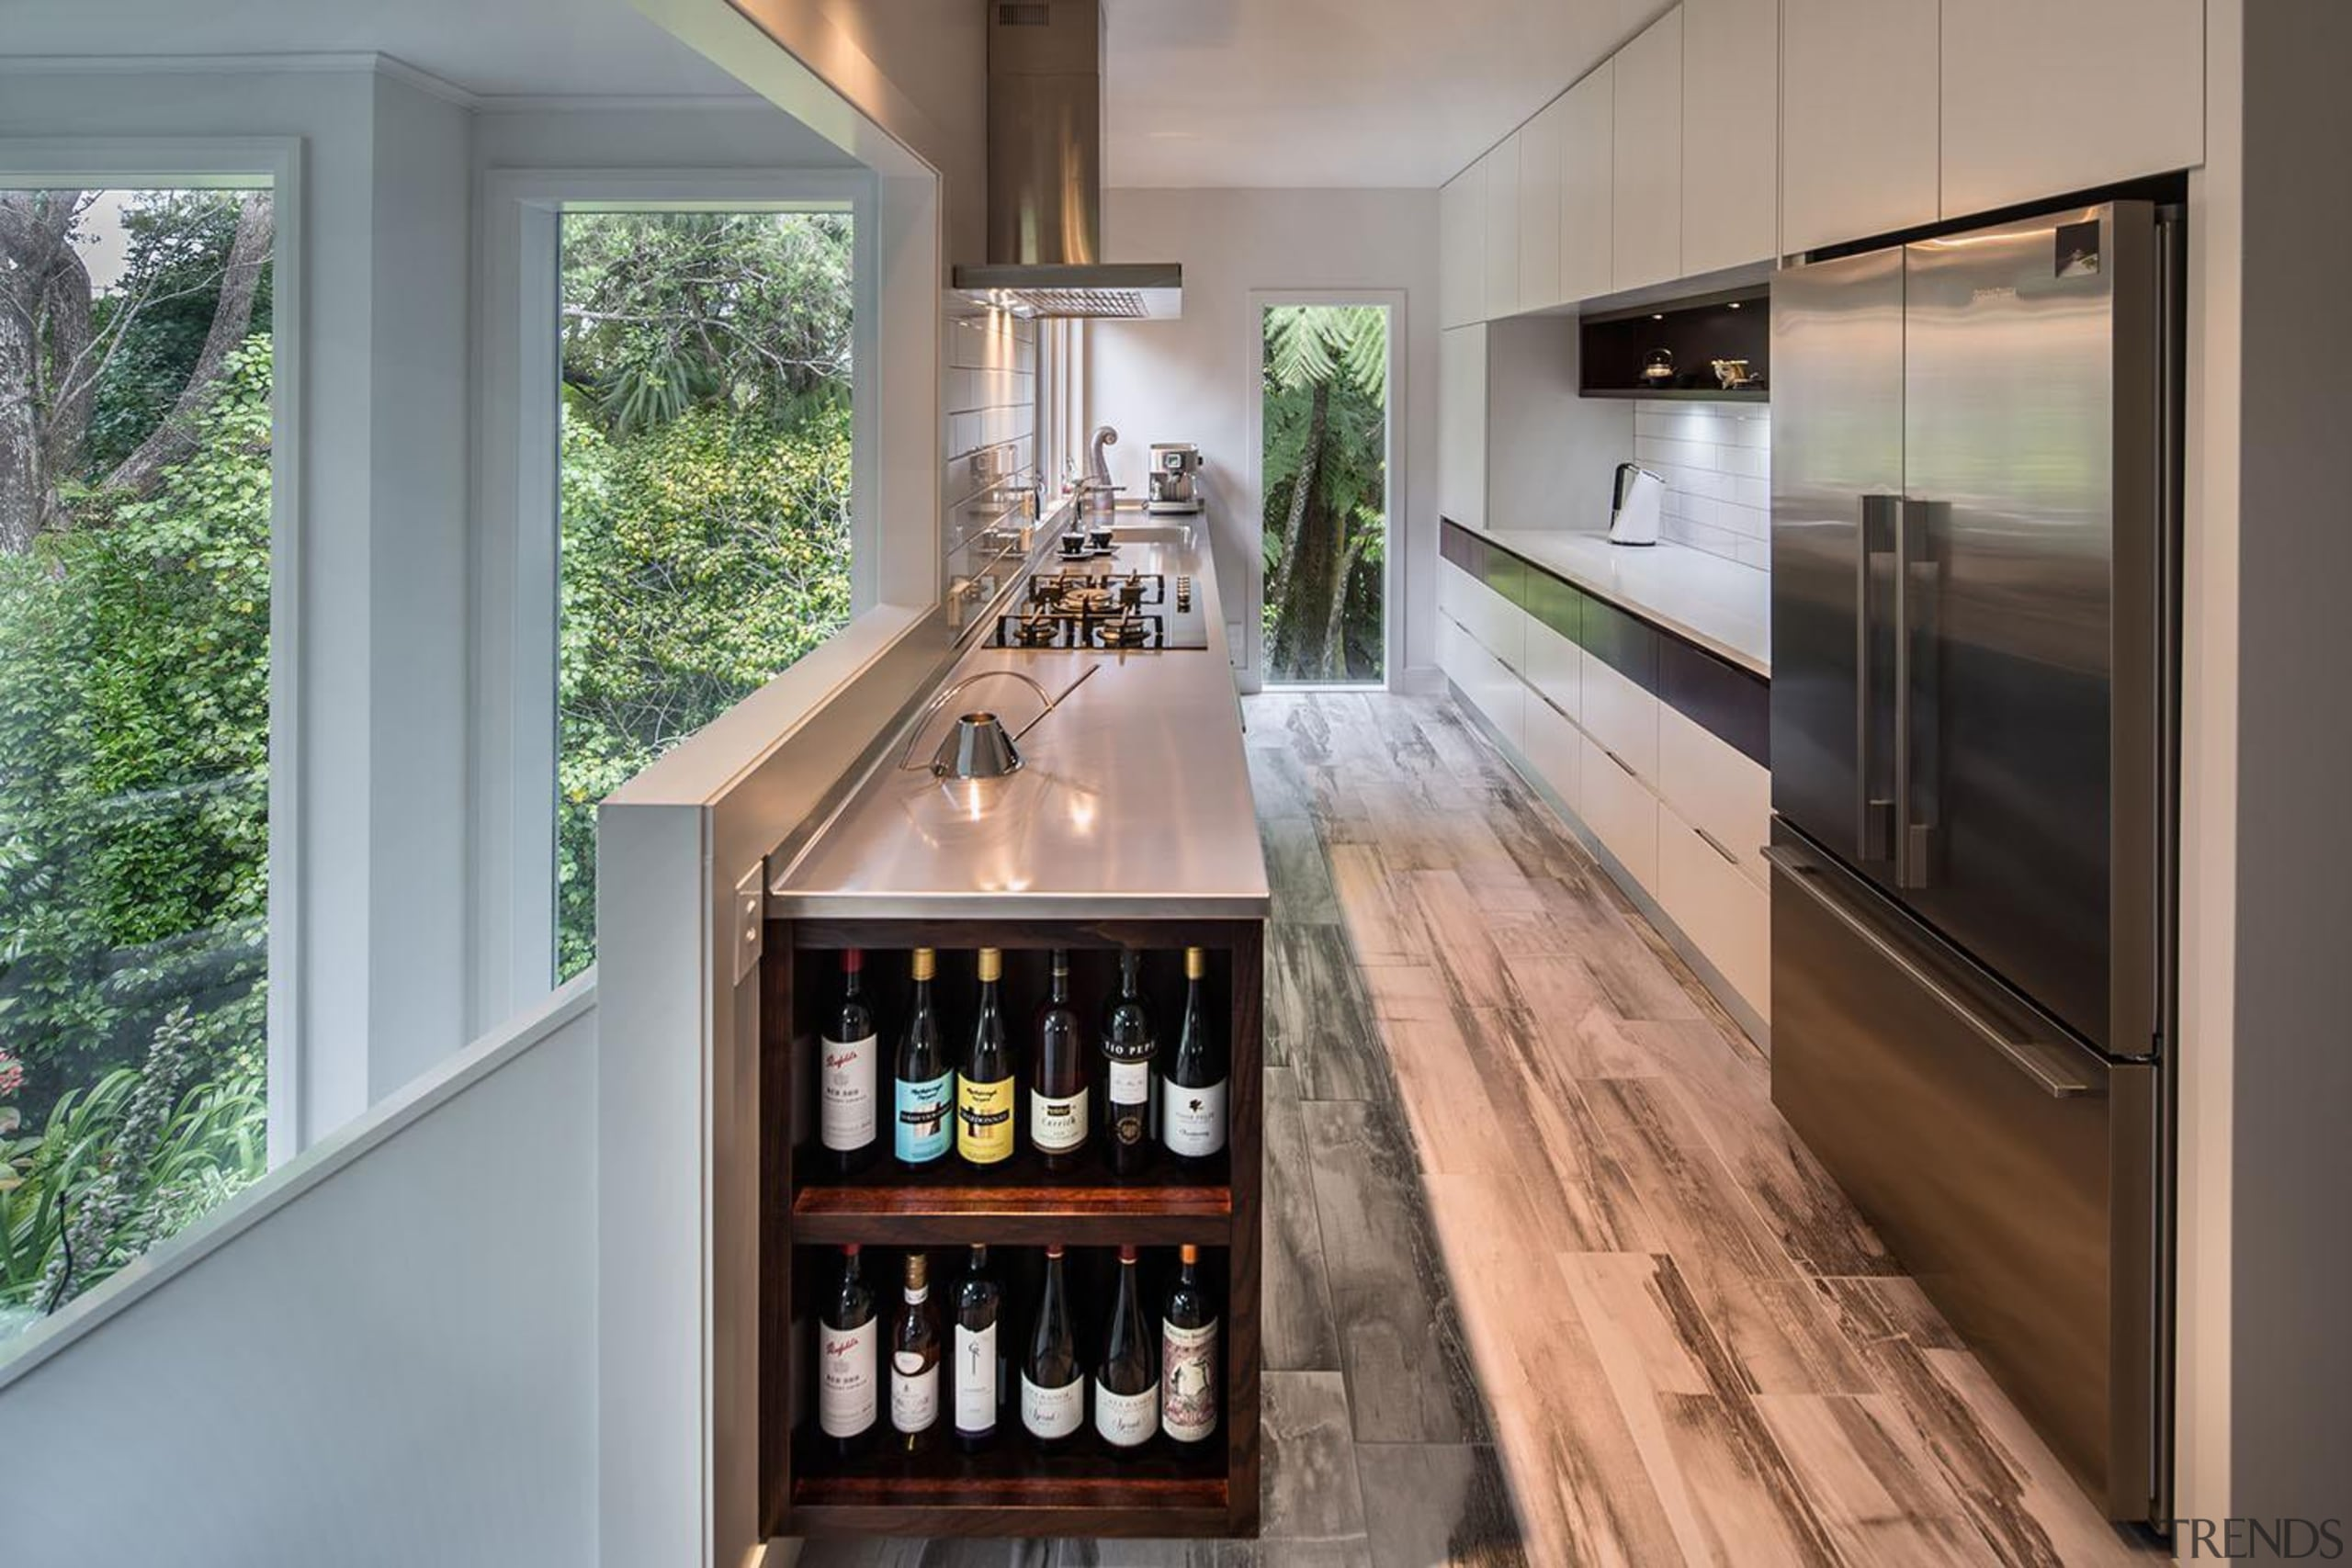 Proudly brought to you by Kitchen Things - architecture, house, interior design, window, gray